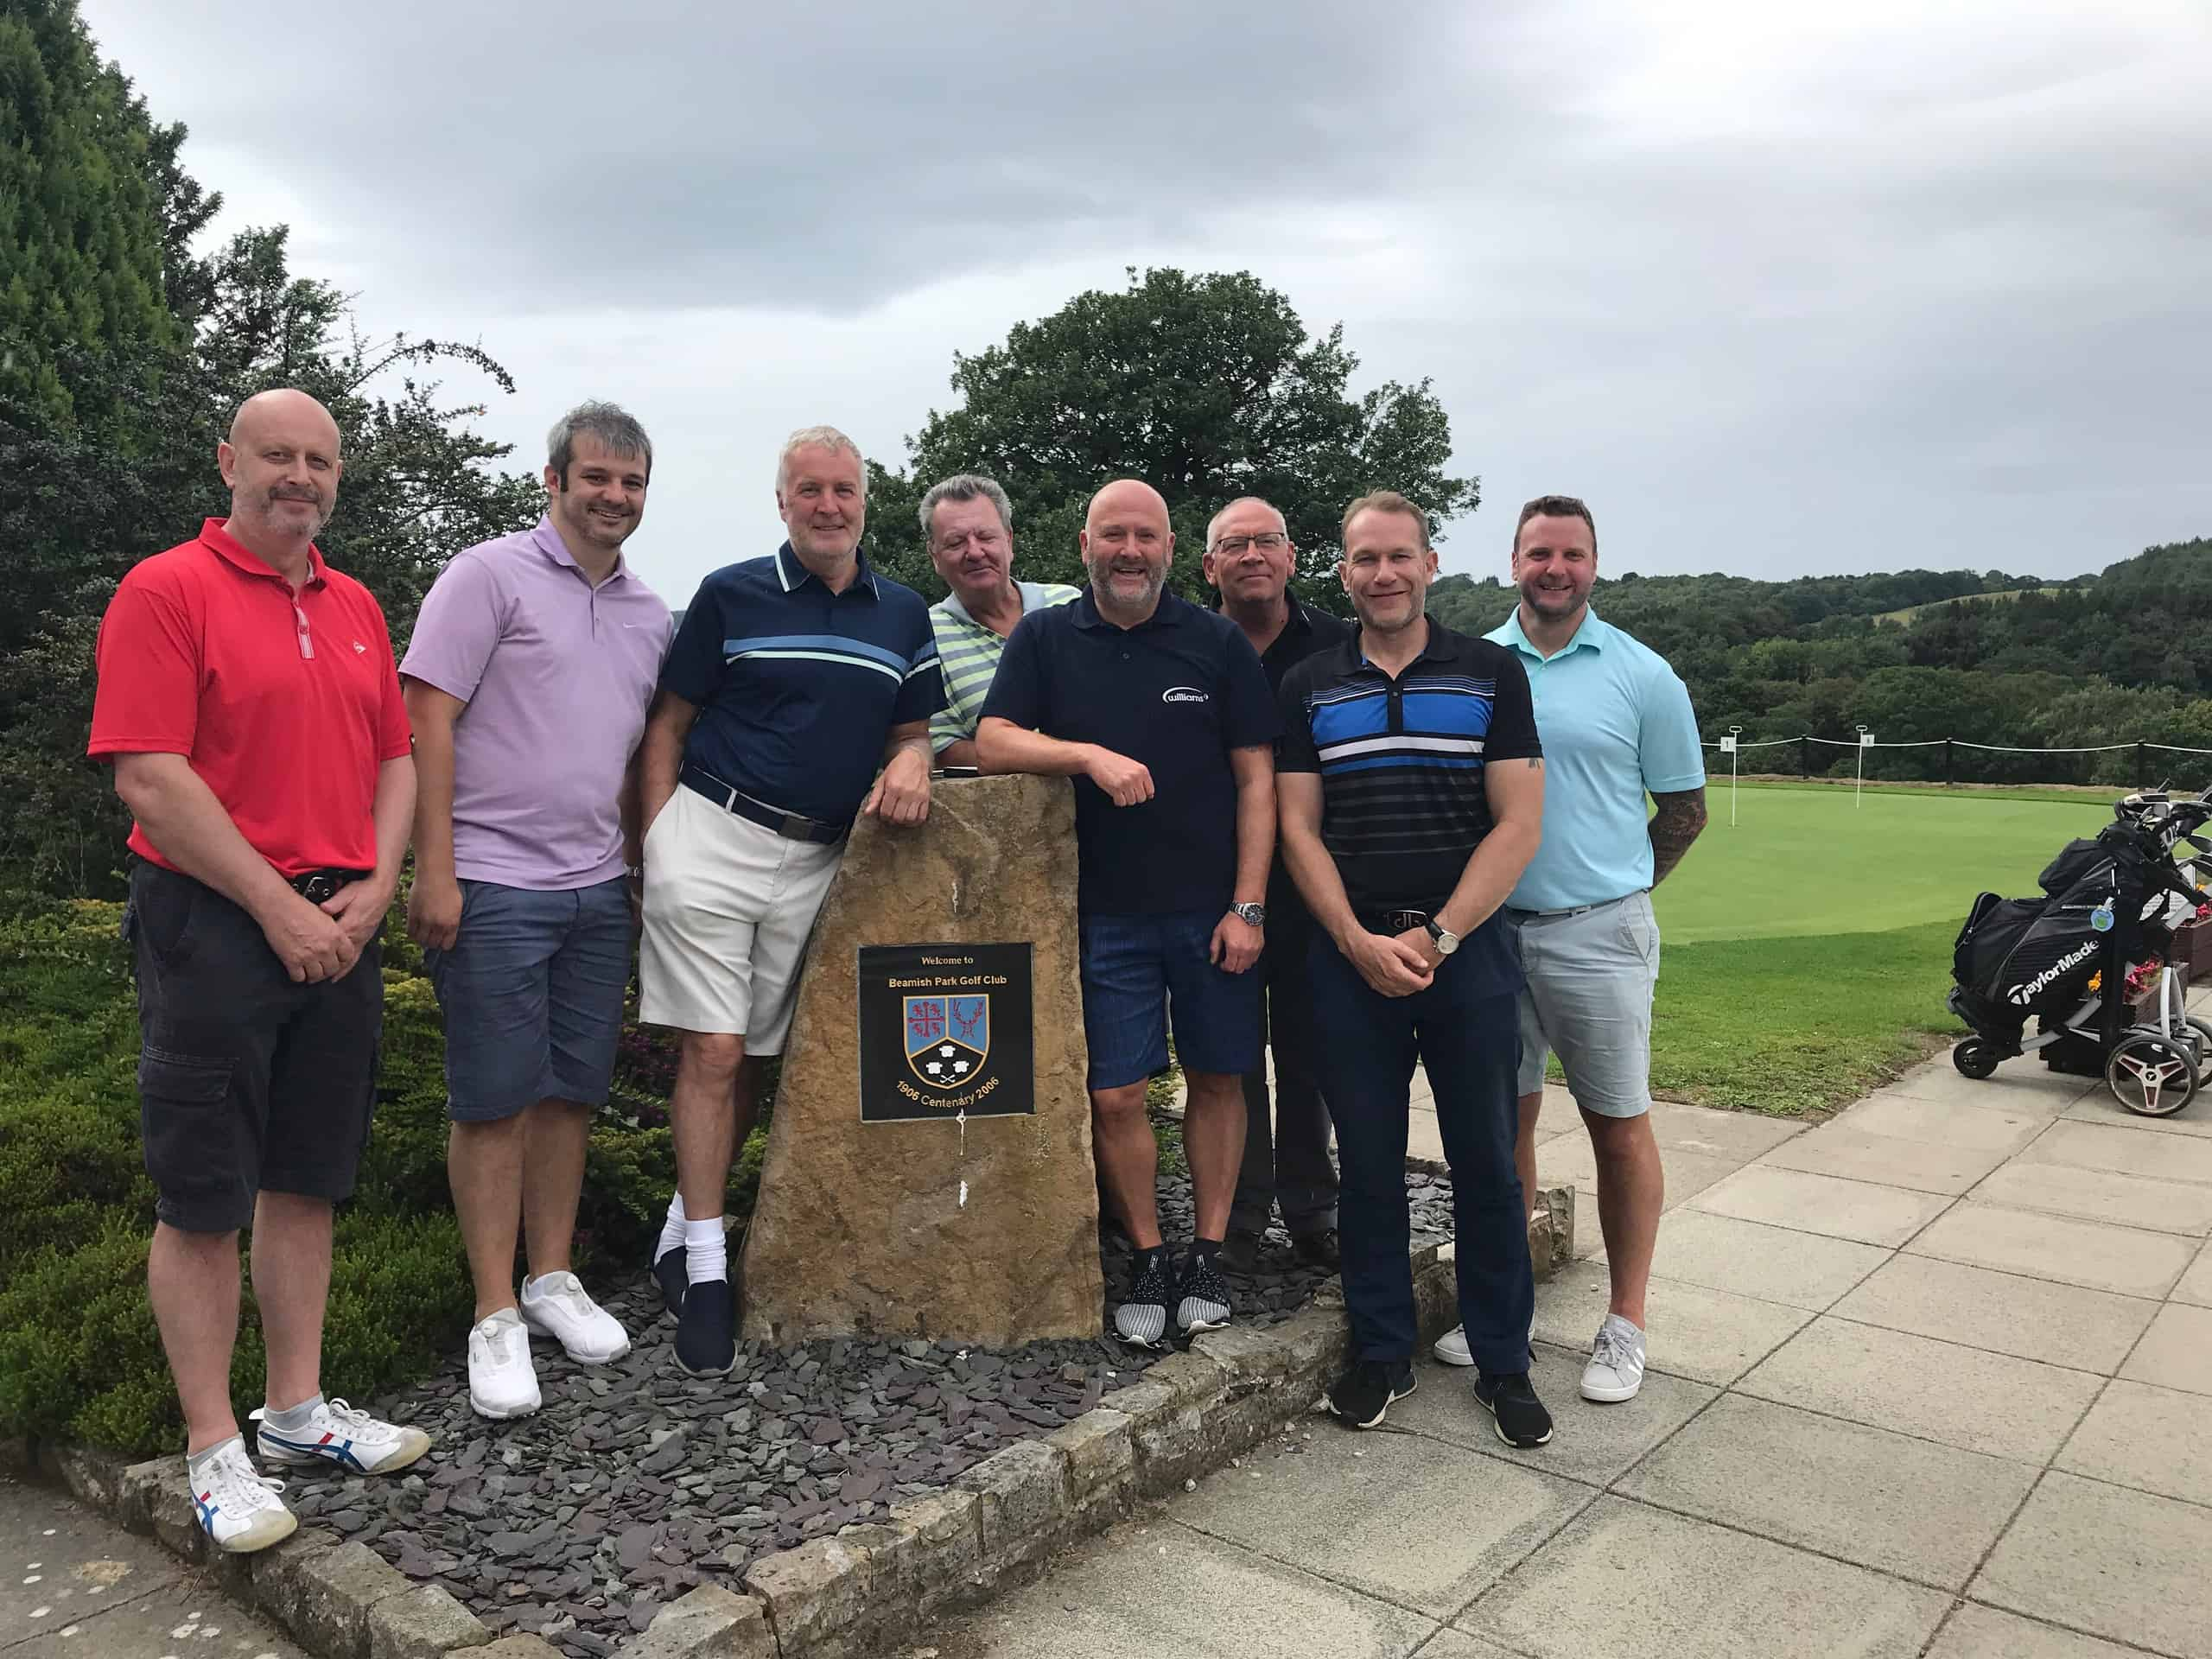 RDA host first Charity Golf Day raising over £1,200 for Anthony Nolan